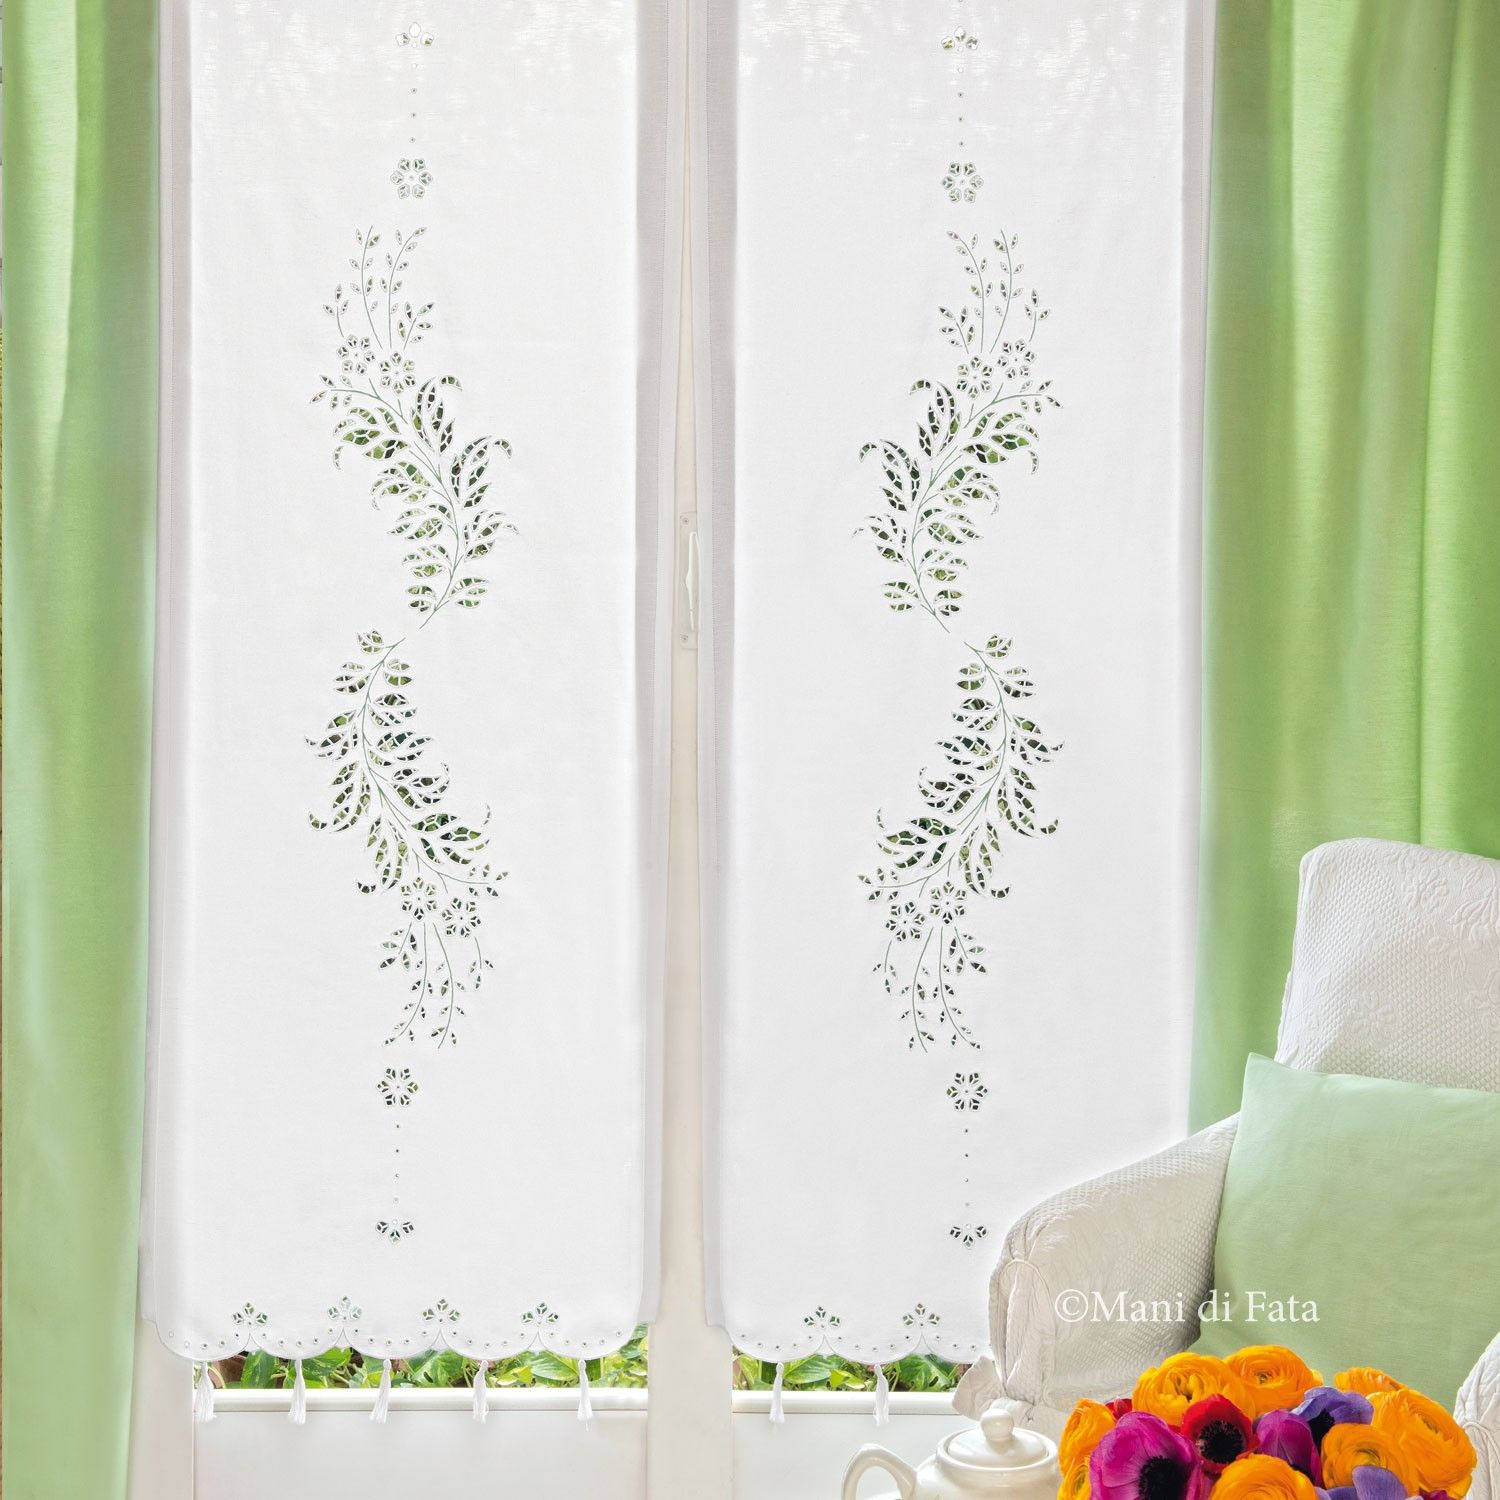 White+pure+linen+with+drawings+to+realize+the+curtain+with+flower+motif+(cutwork+and+broderie+anglaise).